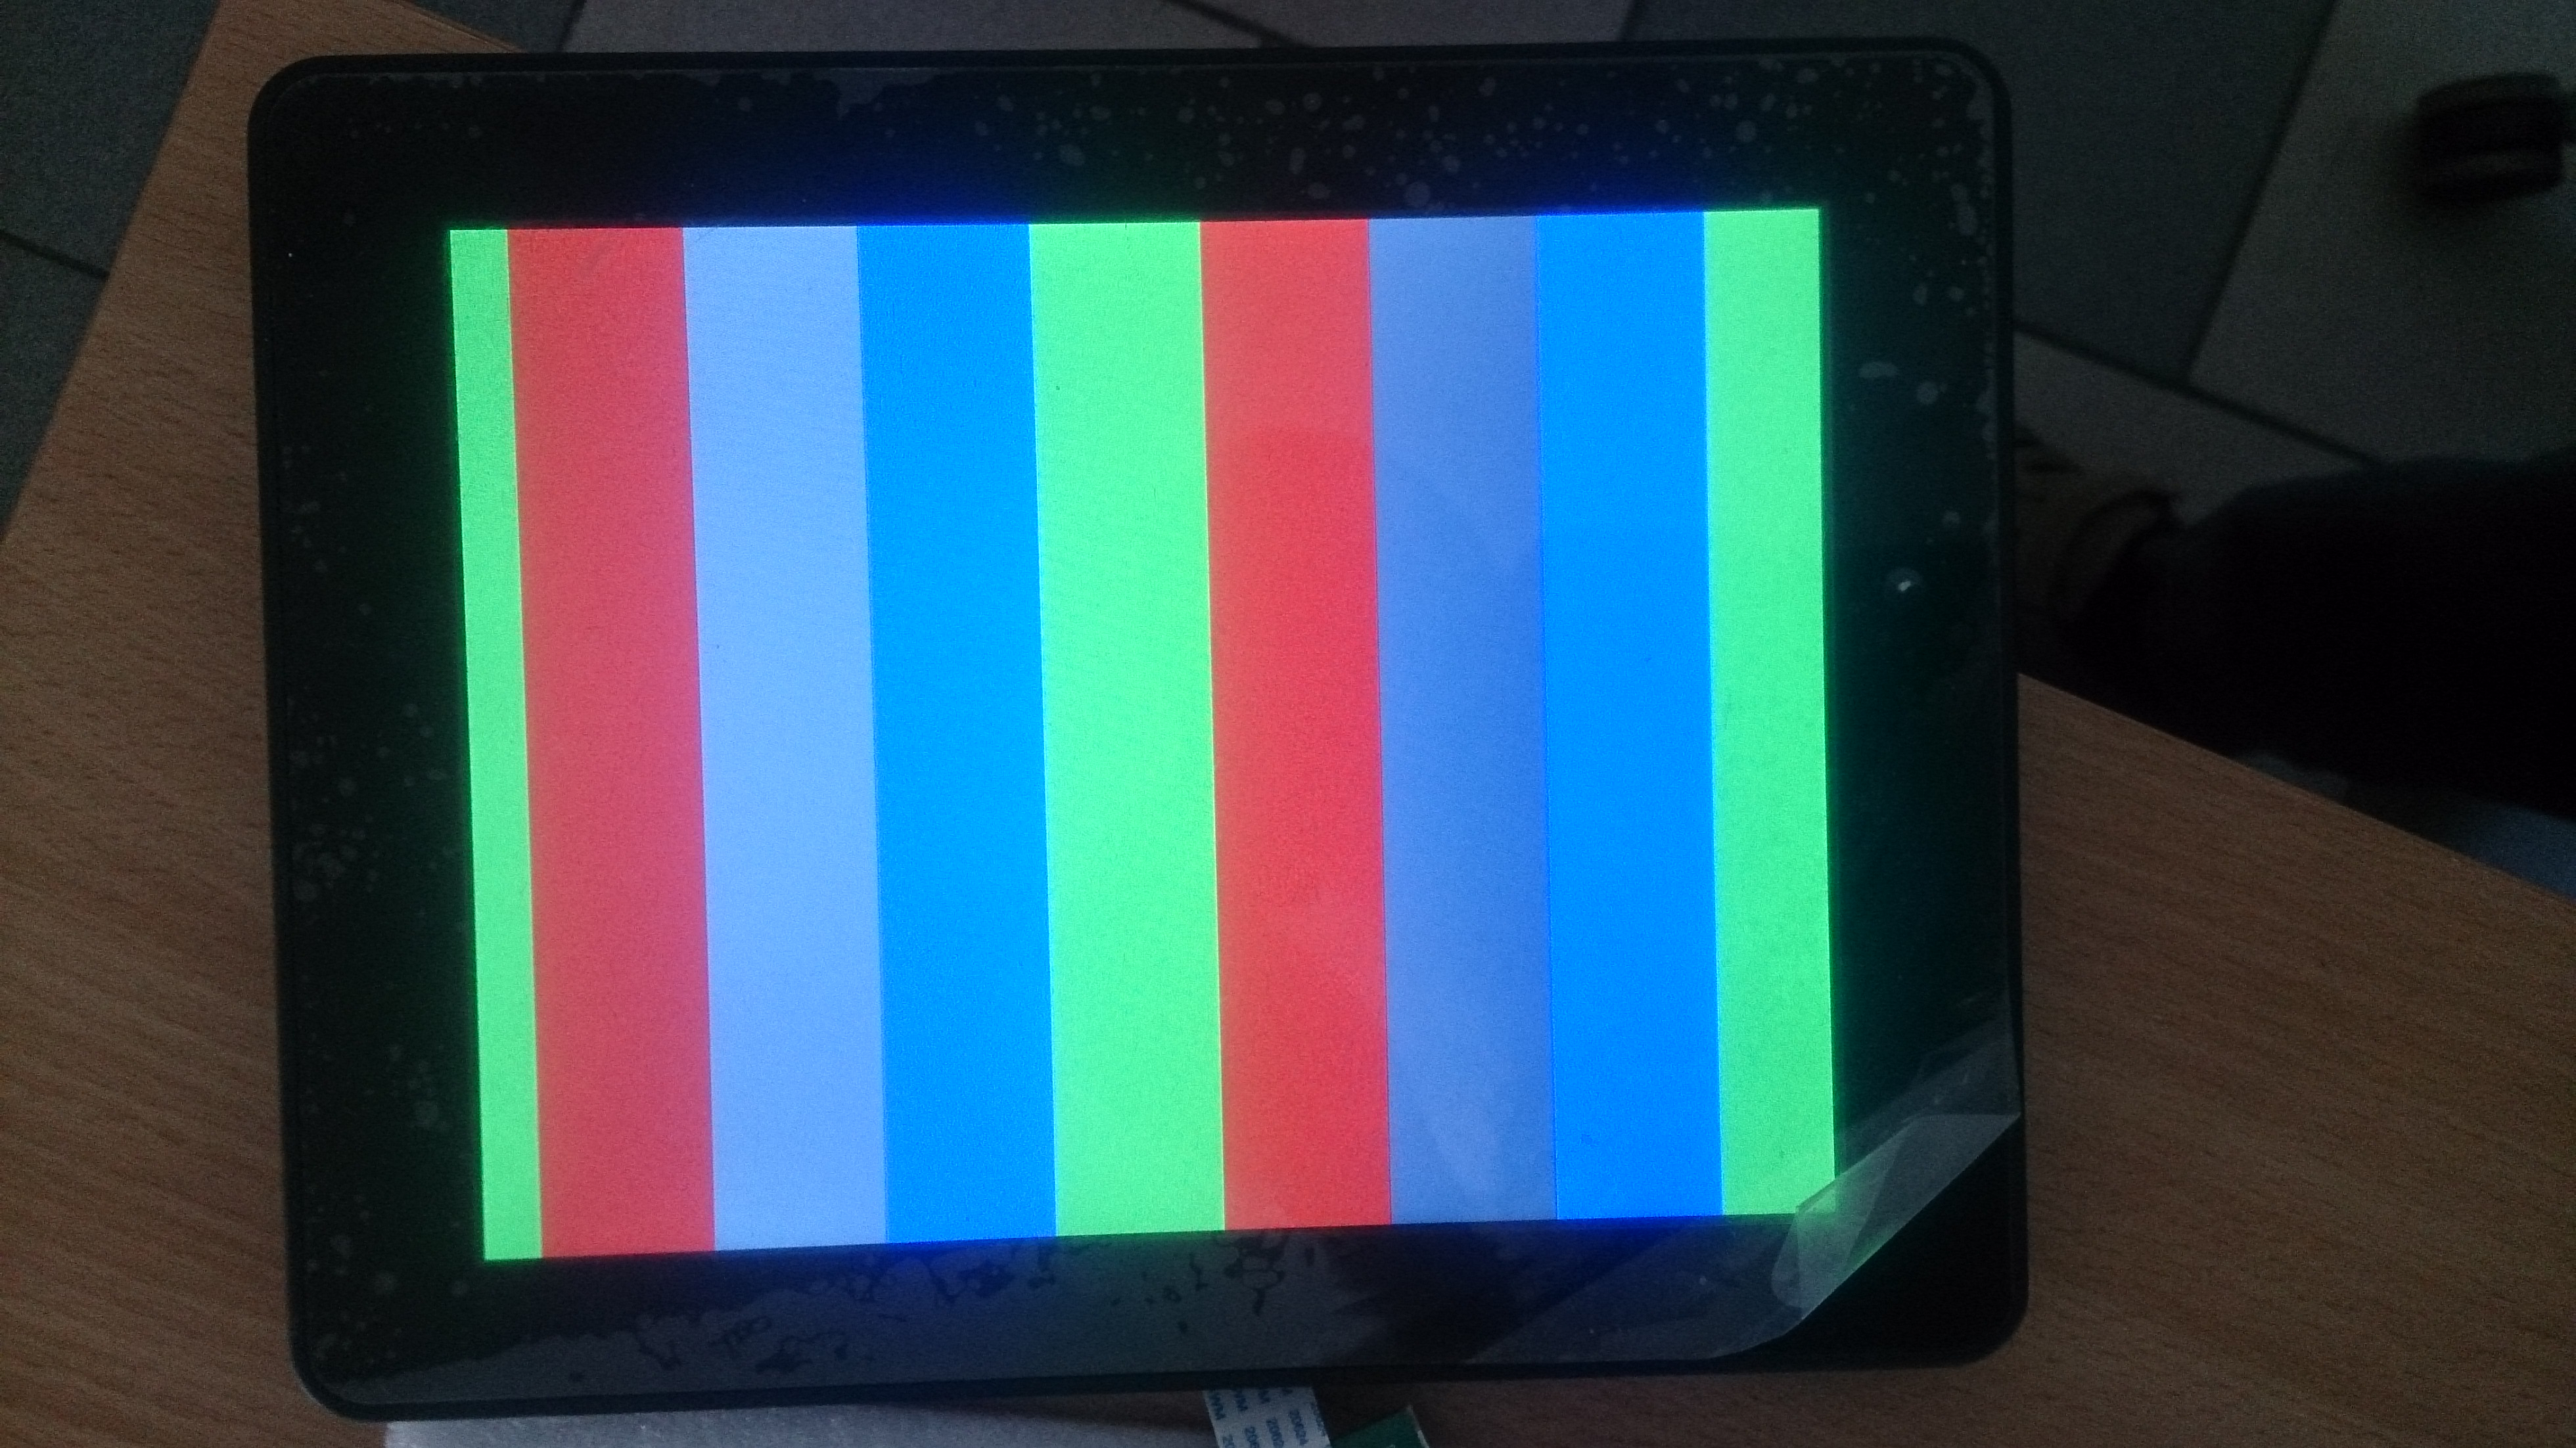 This is my display single channel with test pattern enabled Is this picture shows correct test pattern image What i will see if all things will